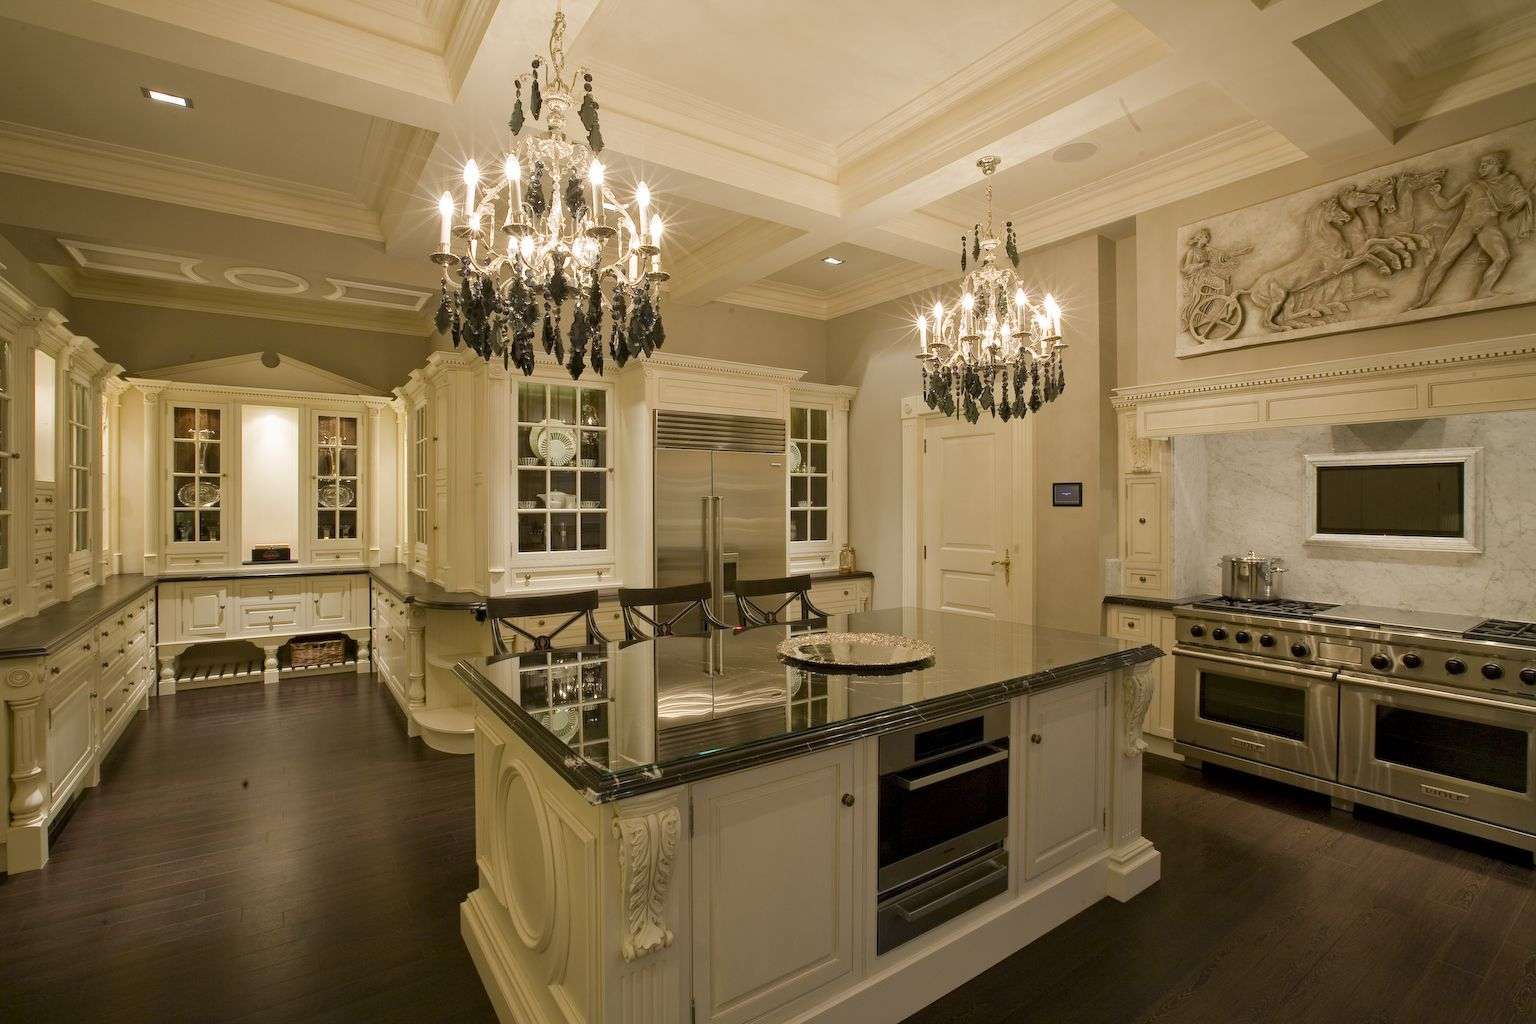 Classic Luxury Kitchen clive christian luxury kitchen in cream. the definition of classic